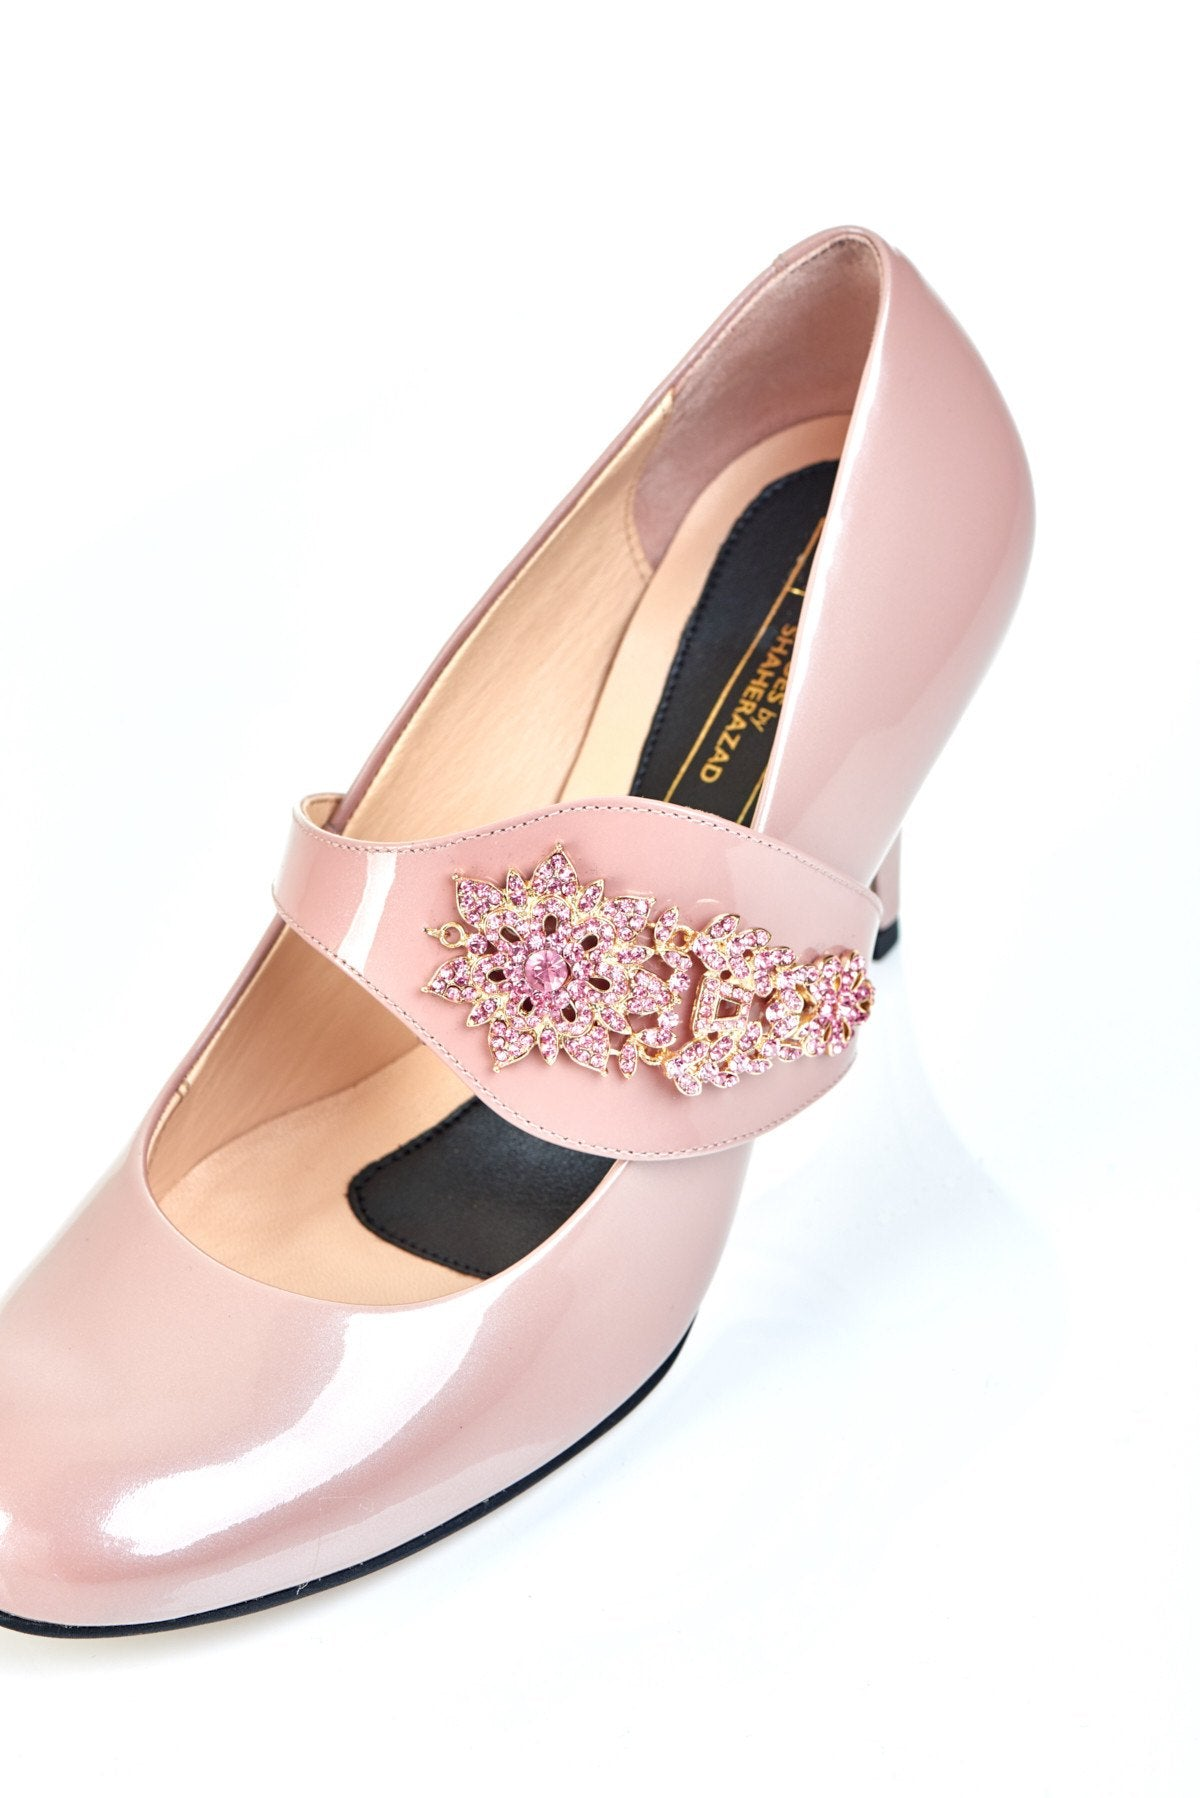 Equally Ever After - Blush Shoellery - Shoes by Shaherazad